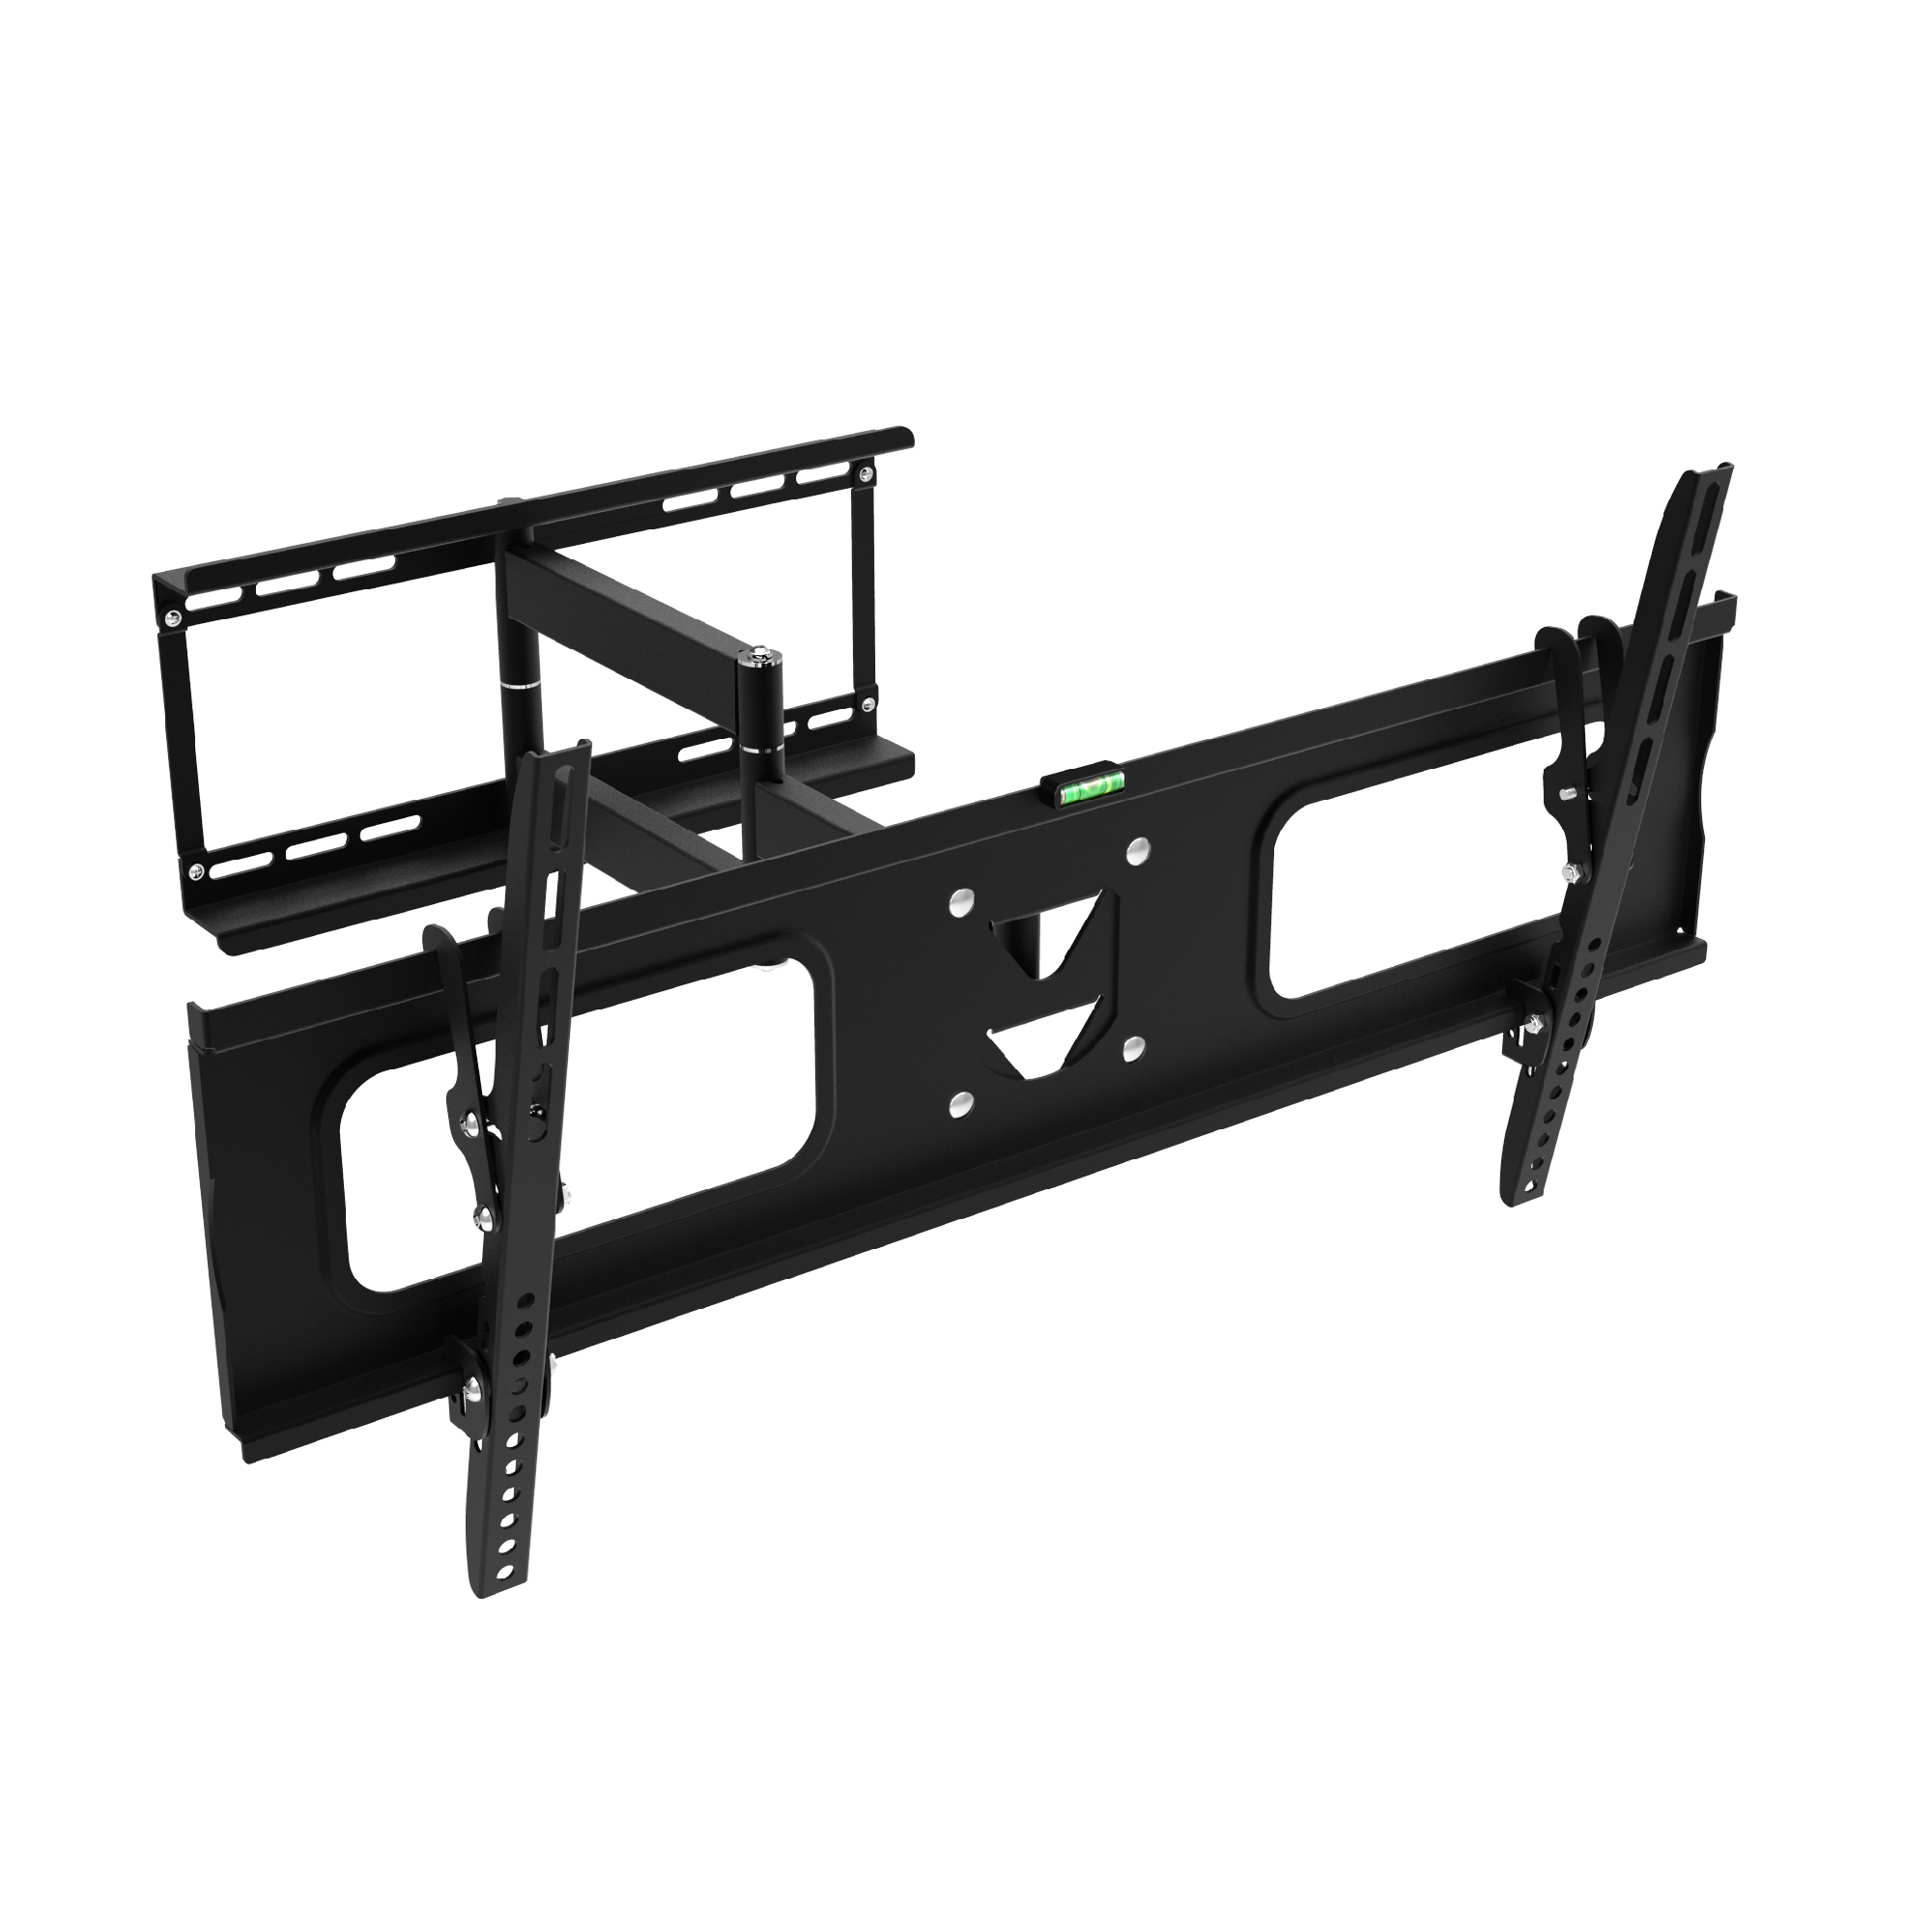 "Ematic Full-Motion Articulating, Tilt/Swivel Universal Wall Mount for 19""-80"" TVs with 15' HDMI Cable"